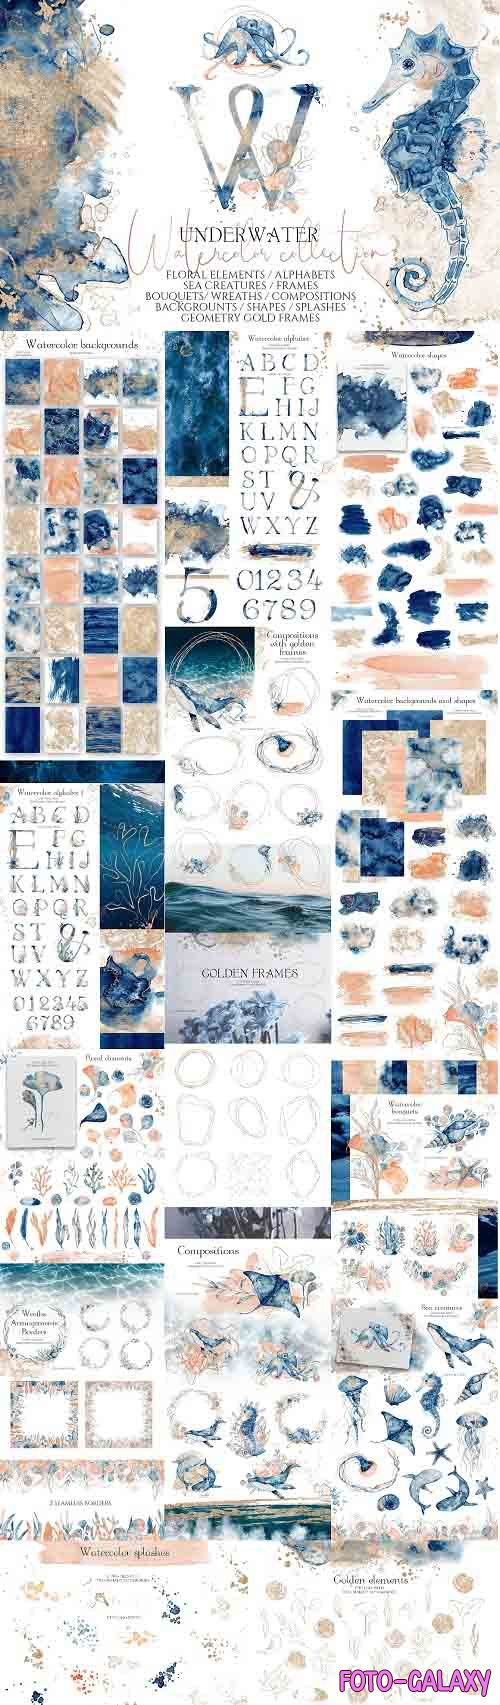 Underwater Watercolor Collection - 4876003